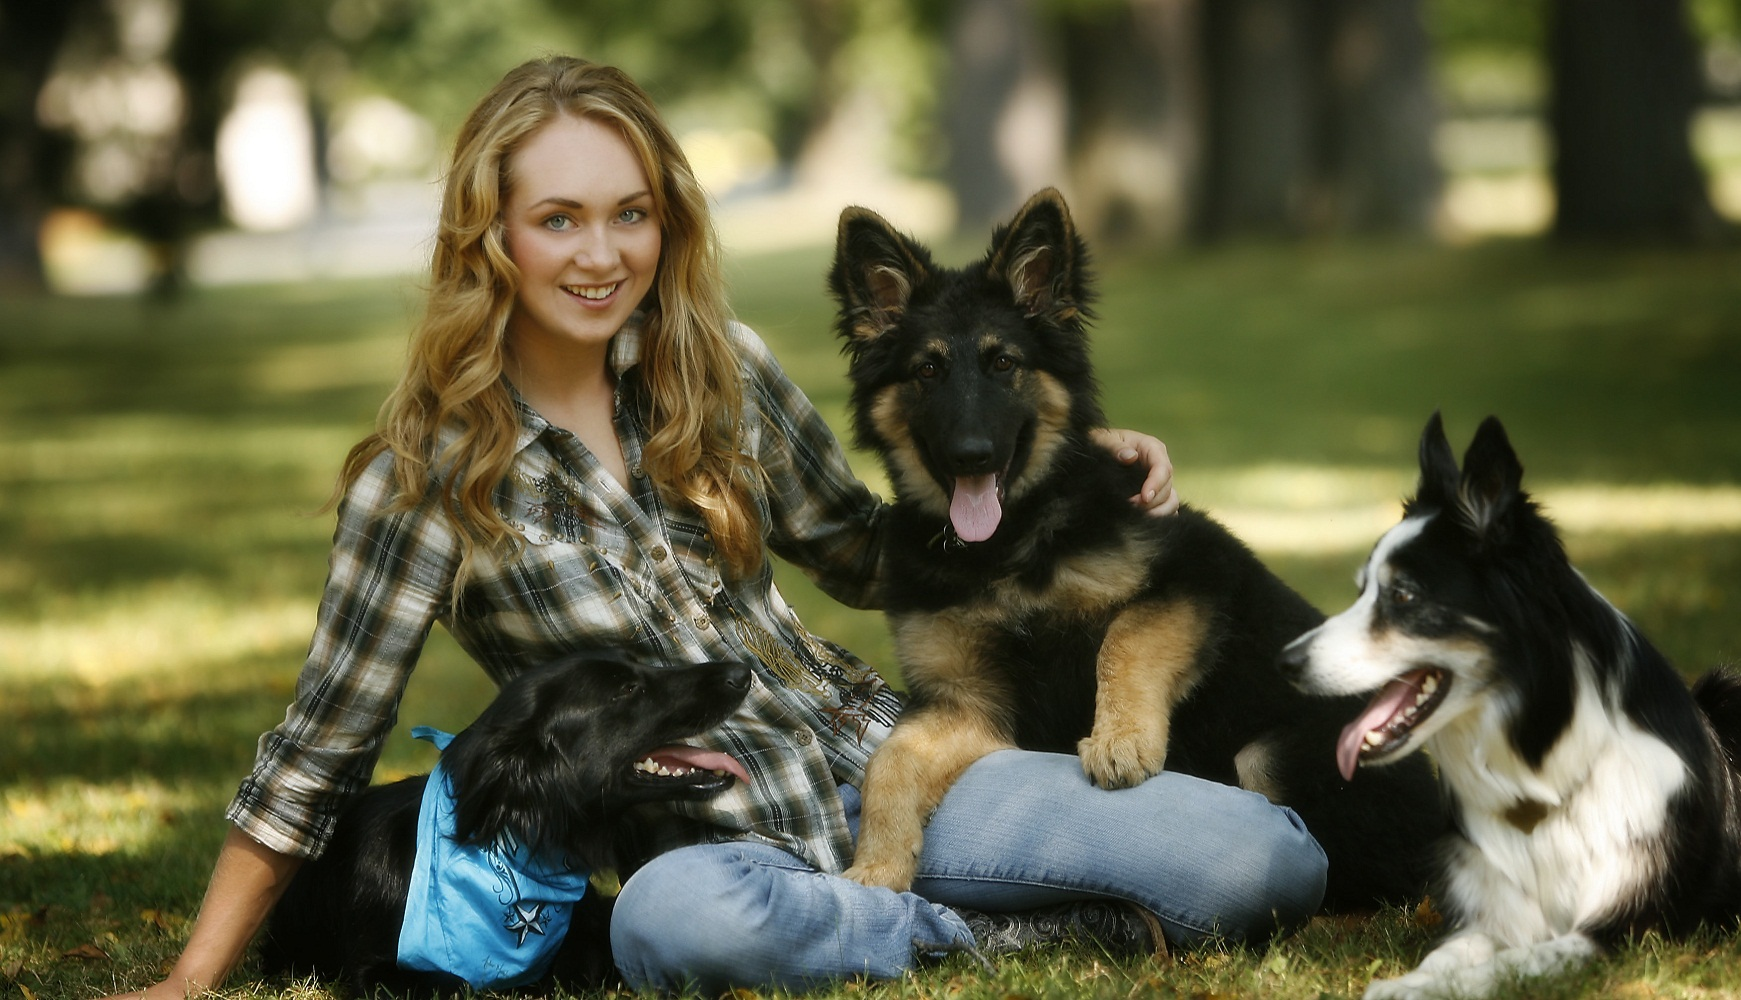 Very Cute Baby Girl Wallpapers Hd Amber Marshall Hottest Pics In Bikini Hd Wallpapers